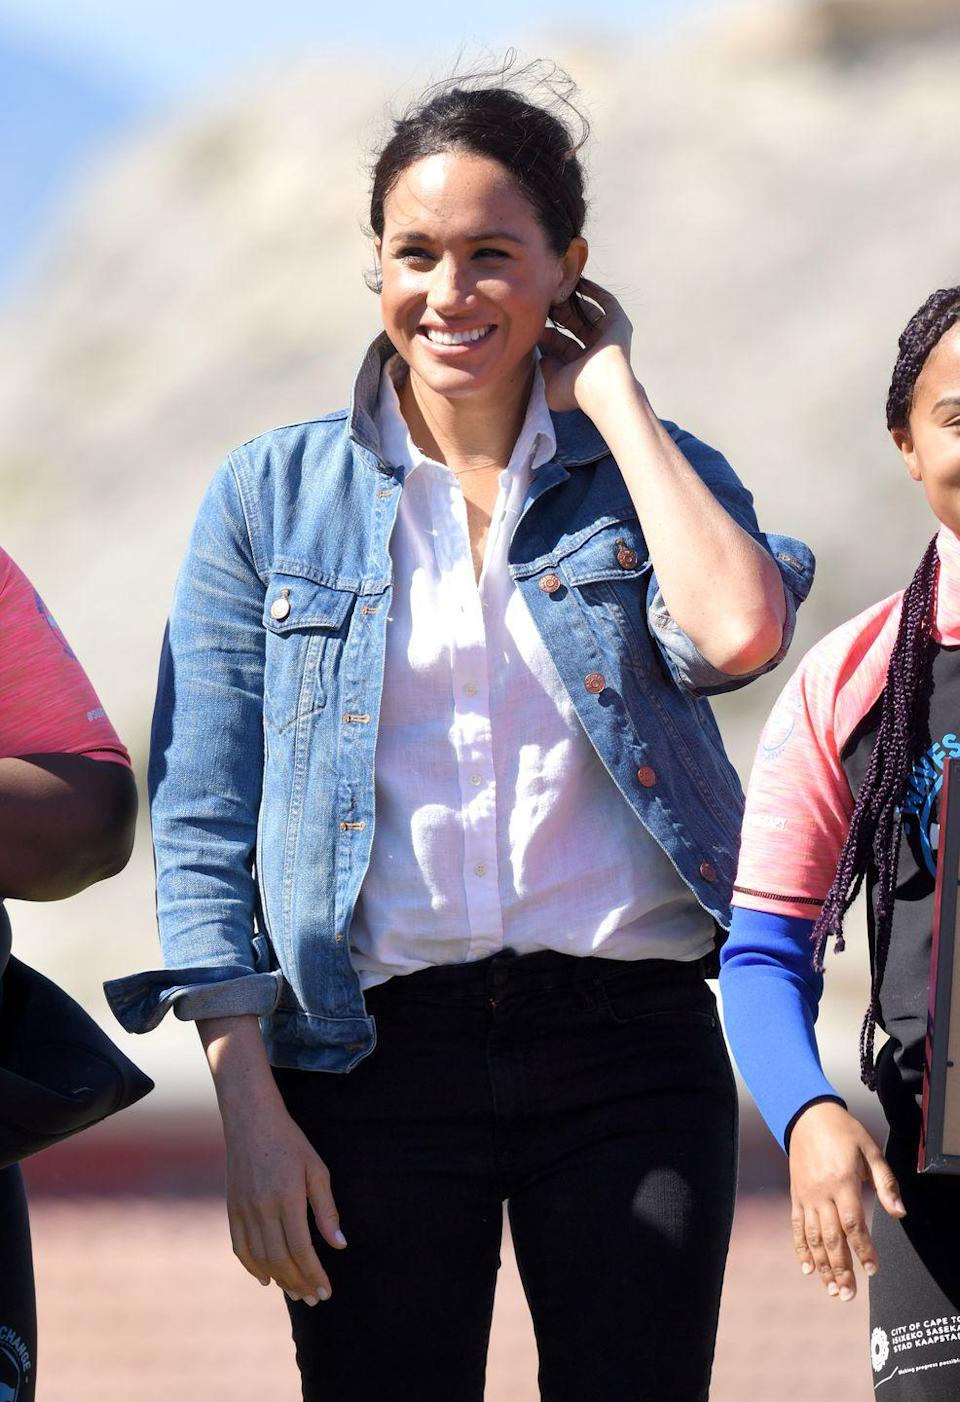 """<p>The Duchess of Sussex went for a classic option while visiting Monwabisi Beach in South Africa. She sported a simple white linen J. Crew shirt for the outing. </p><p><a class=""""link rapid-noclick-resp"""" href=""""https://go.redirectingat.com?id=74968X1596630&url=https%3A%2F%2Fwww.jcrew.com%2Fp%2Fwomens_category%2Fshirts_tops%2Frelaxedfit-baird-mcnutt-irish-linen-shirt%2FAW700%3Fcolor_name%3Dwhite&sref=https%3A%2F%2Fwww.townandcountrymag.com%2Fsociety%2Ftradition%2Fg36386449%2Fmeghan-markle-white-button-down-shirts%2F"""" rel=""""nofollow noopener"""" target=""""_blank"""" data-ylk=""""slk:Shop Now"""">Shop Now</a></p>"""